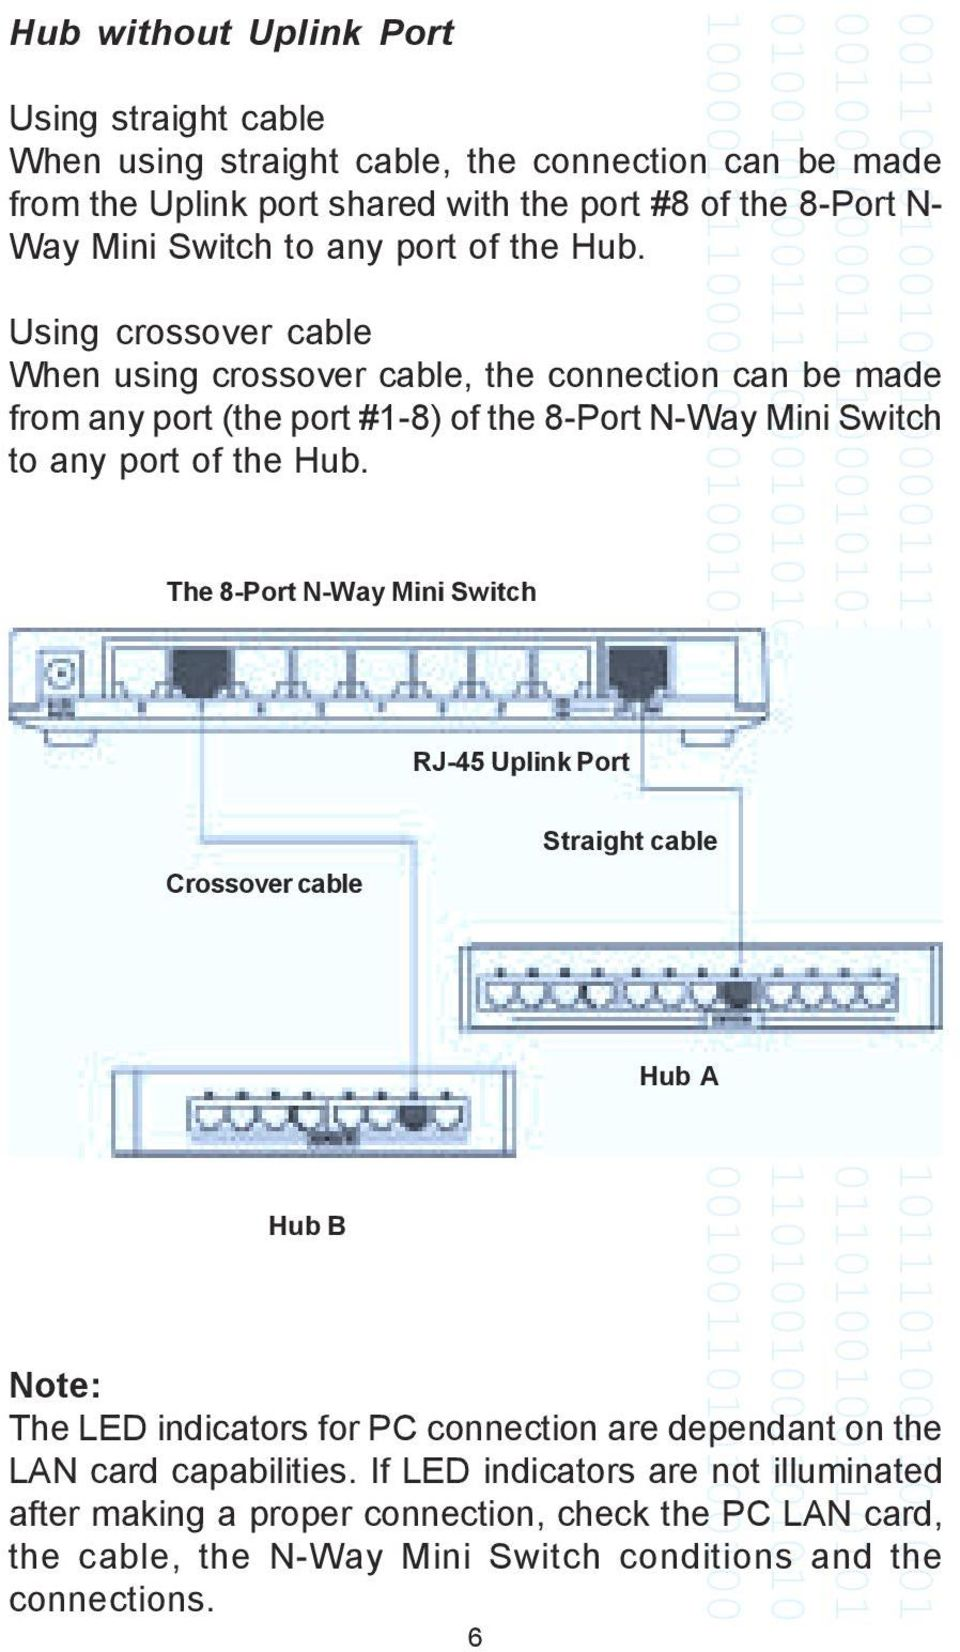 Using crossover cable When using crossover cable, the connection can be made from any port (the port #1-8) of the 8-Port N-Way Mini  The 8-Port N-Way Mini Switch Crossover